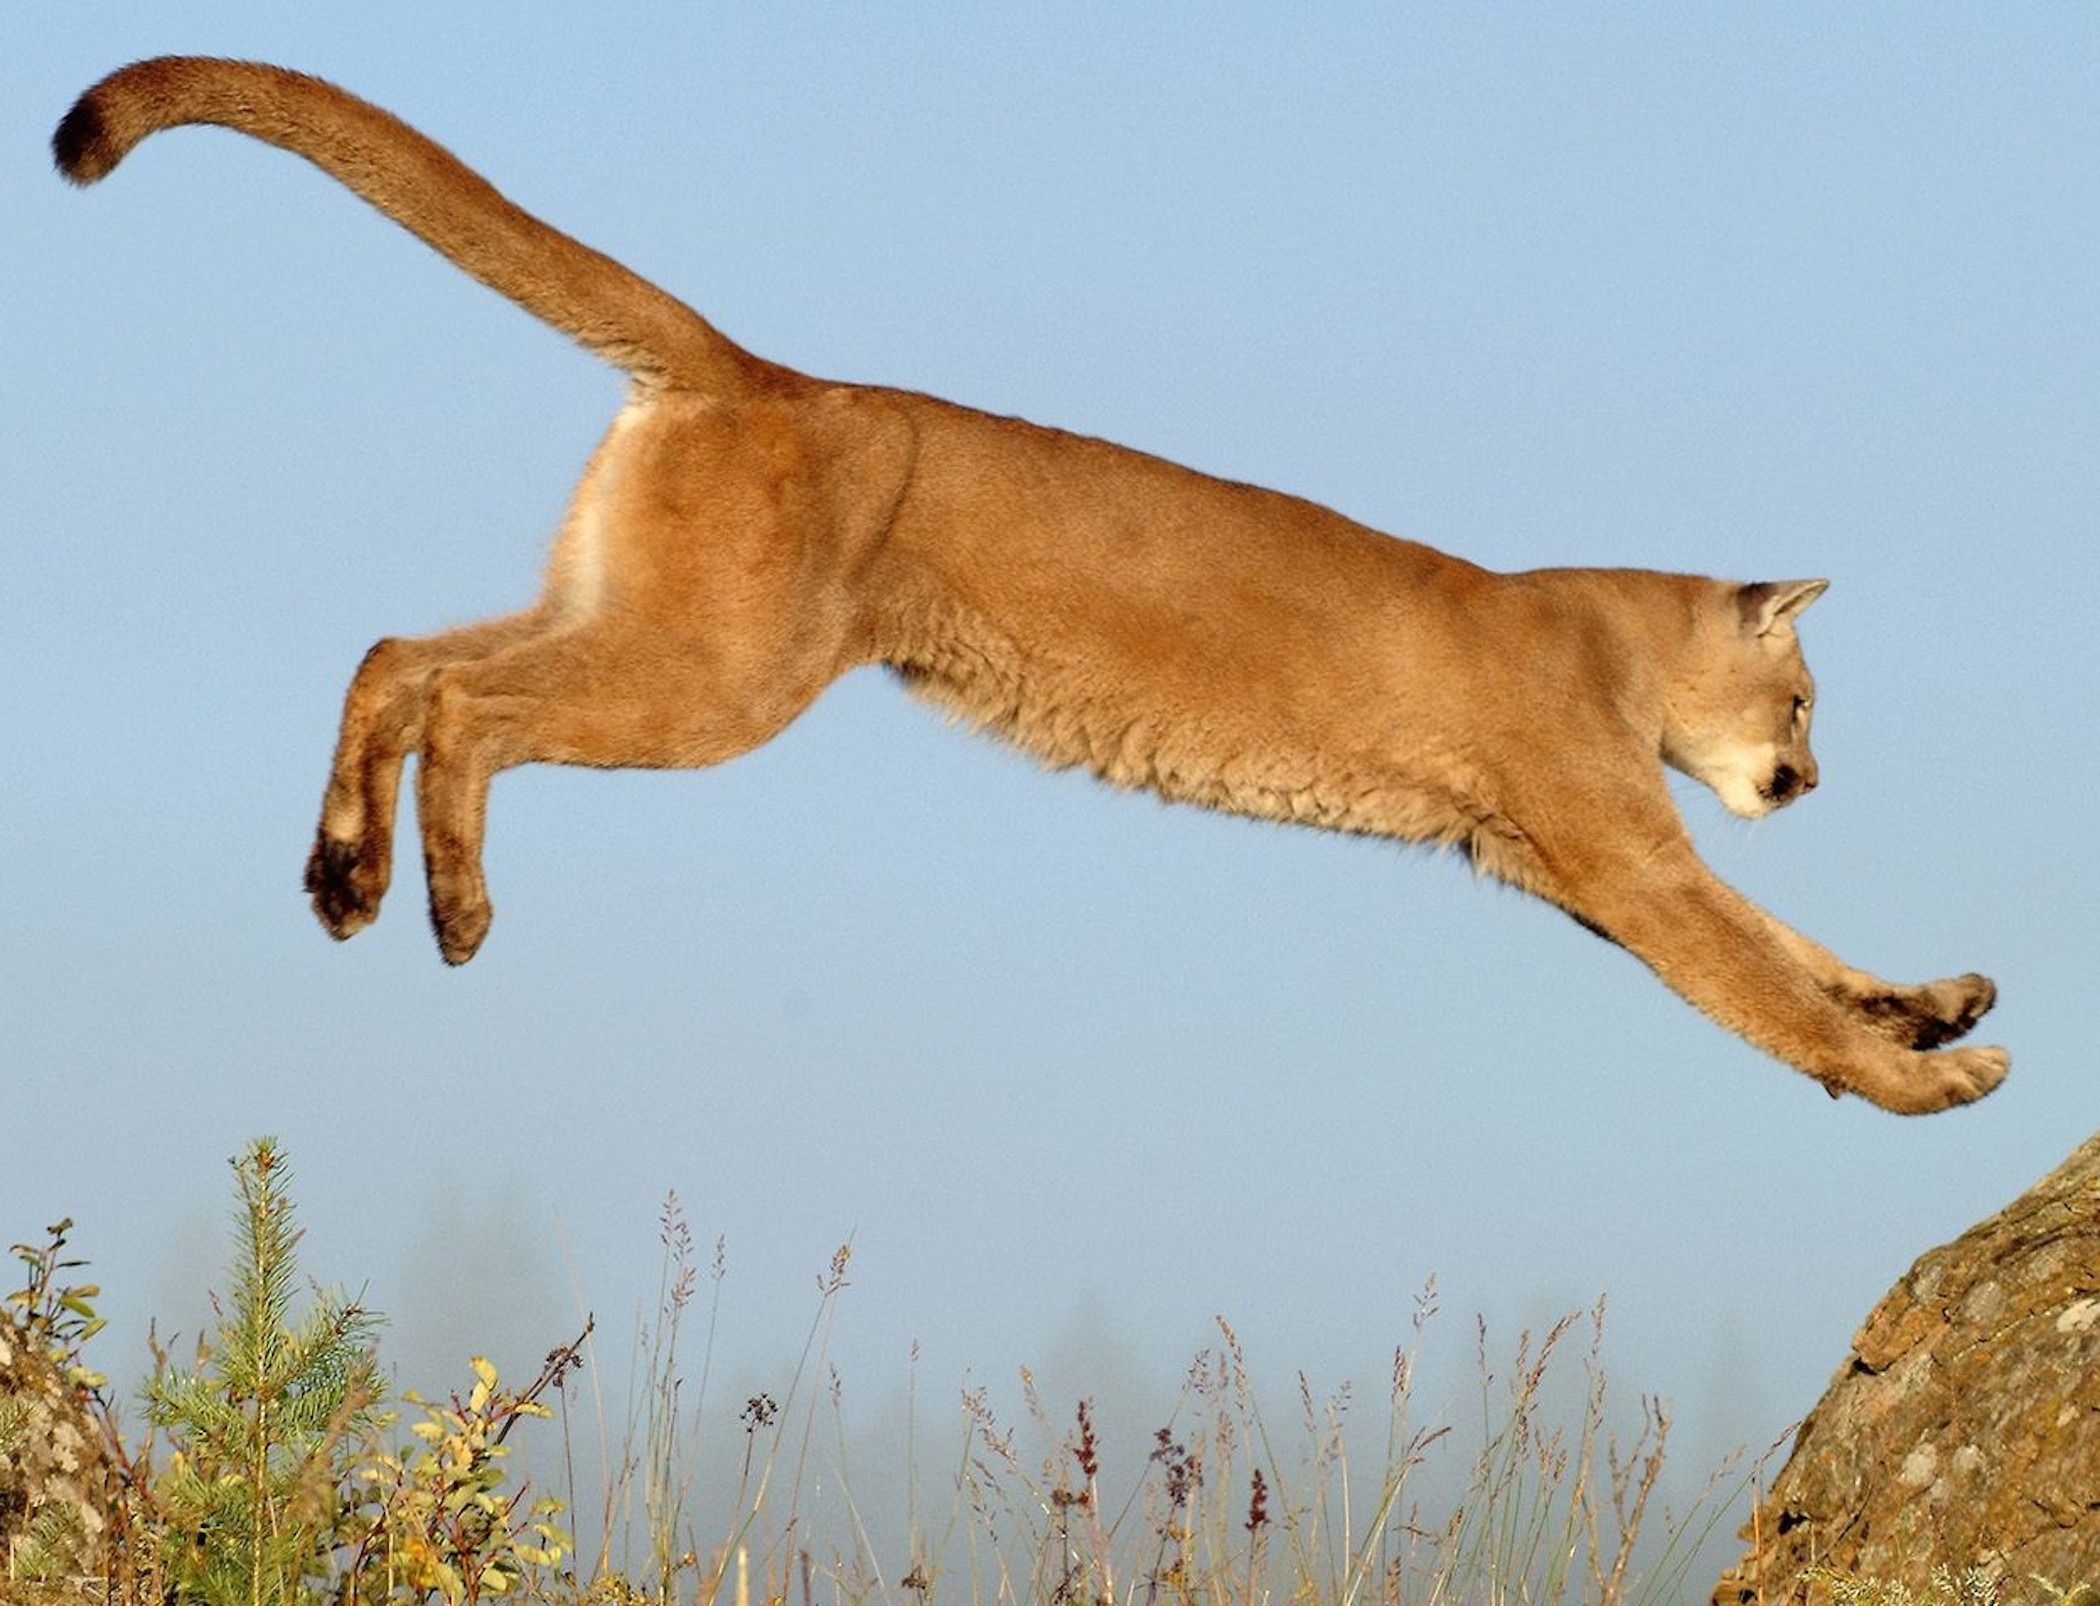 Leaping Cougar Wallpaper Free HD Big Cat Backgrounds